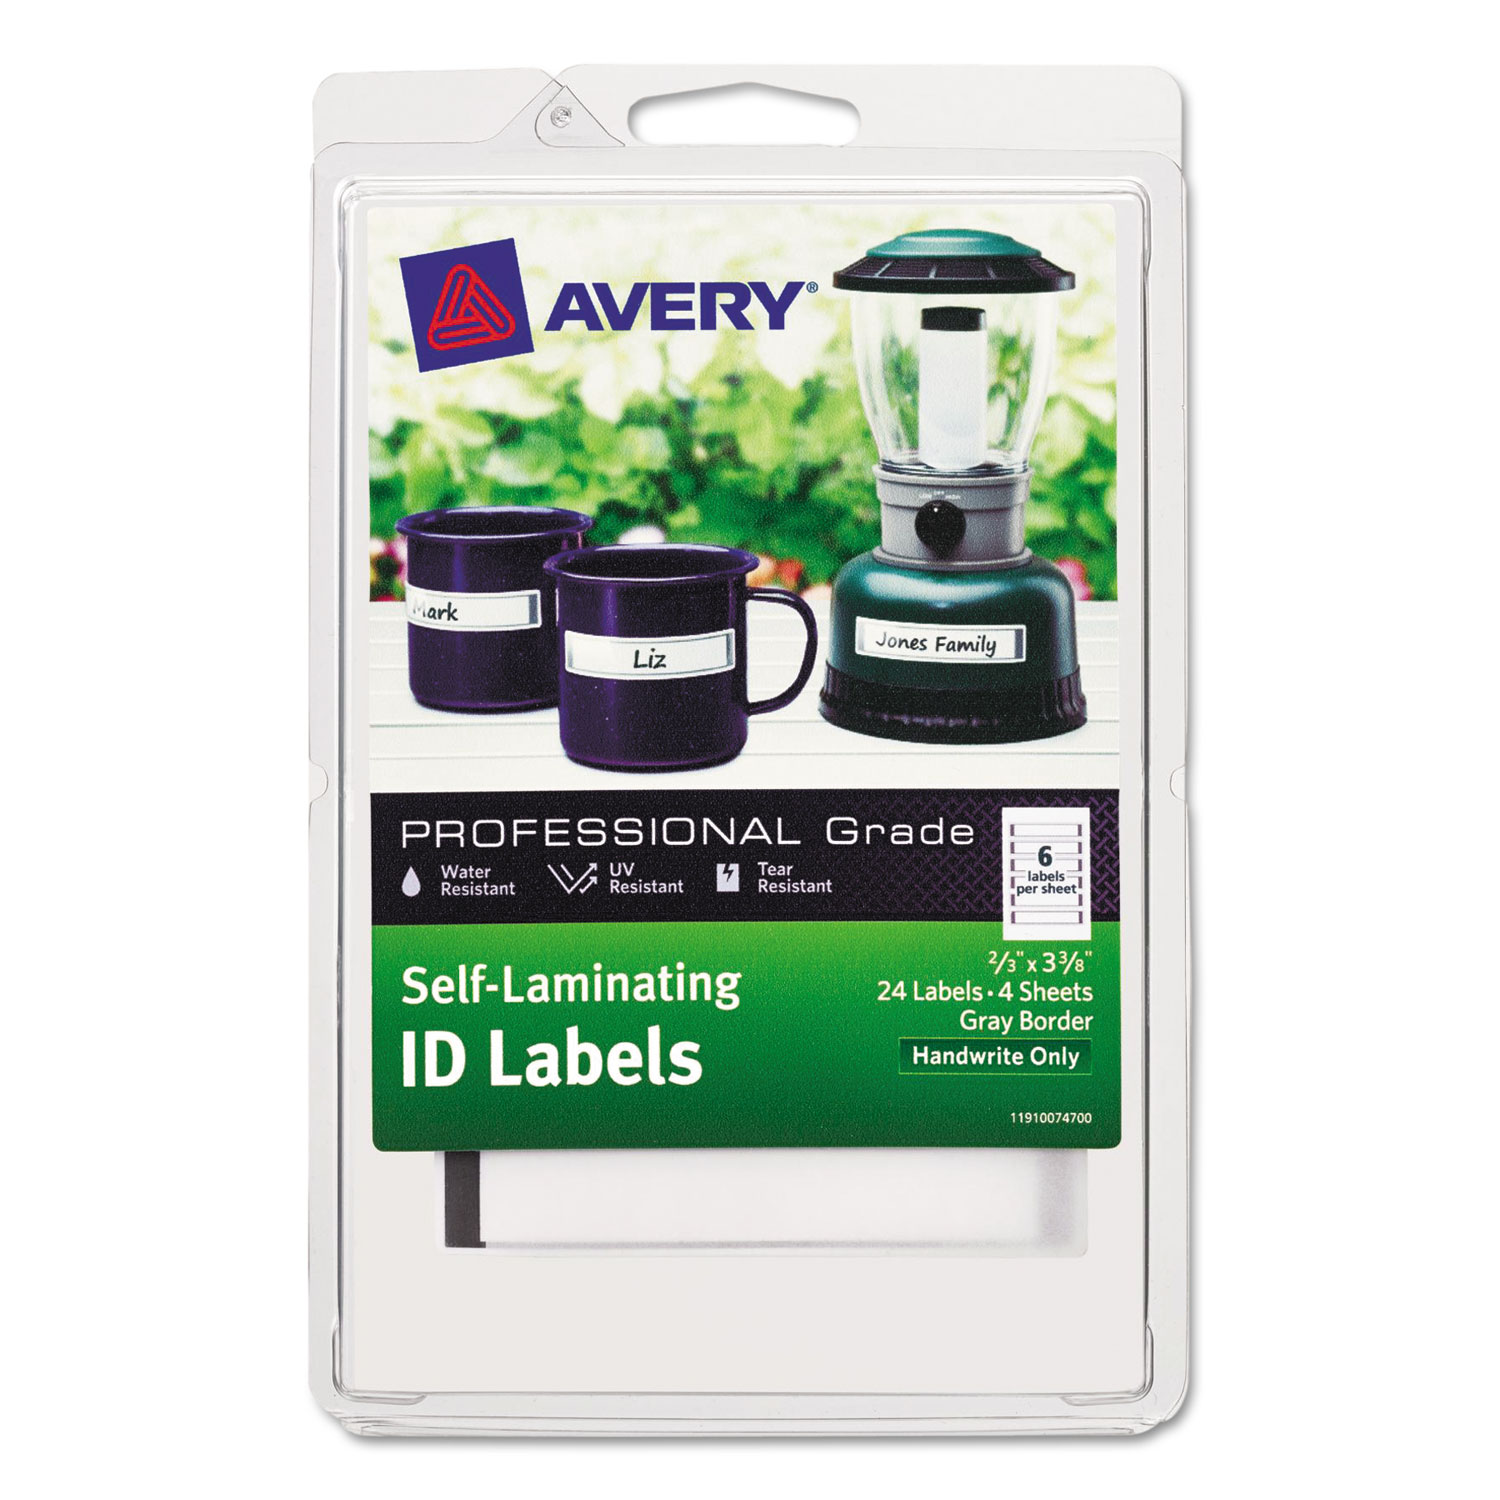 self laminating id labels by avery ave00747 ontimesupplies com